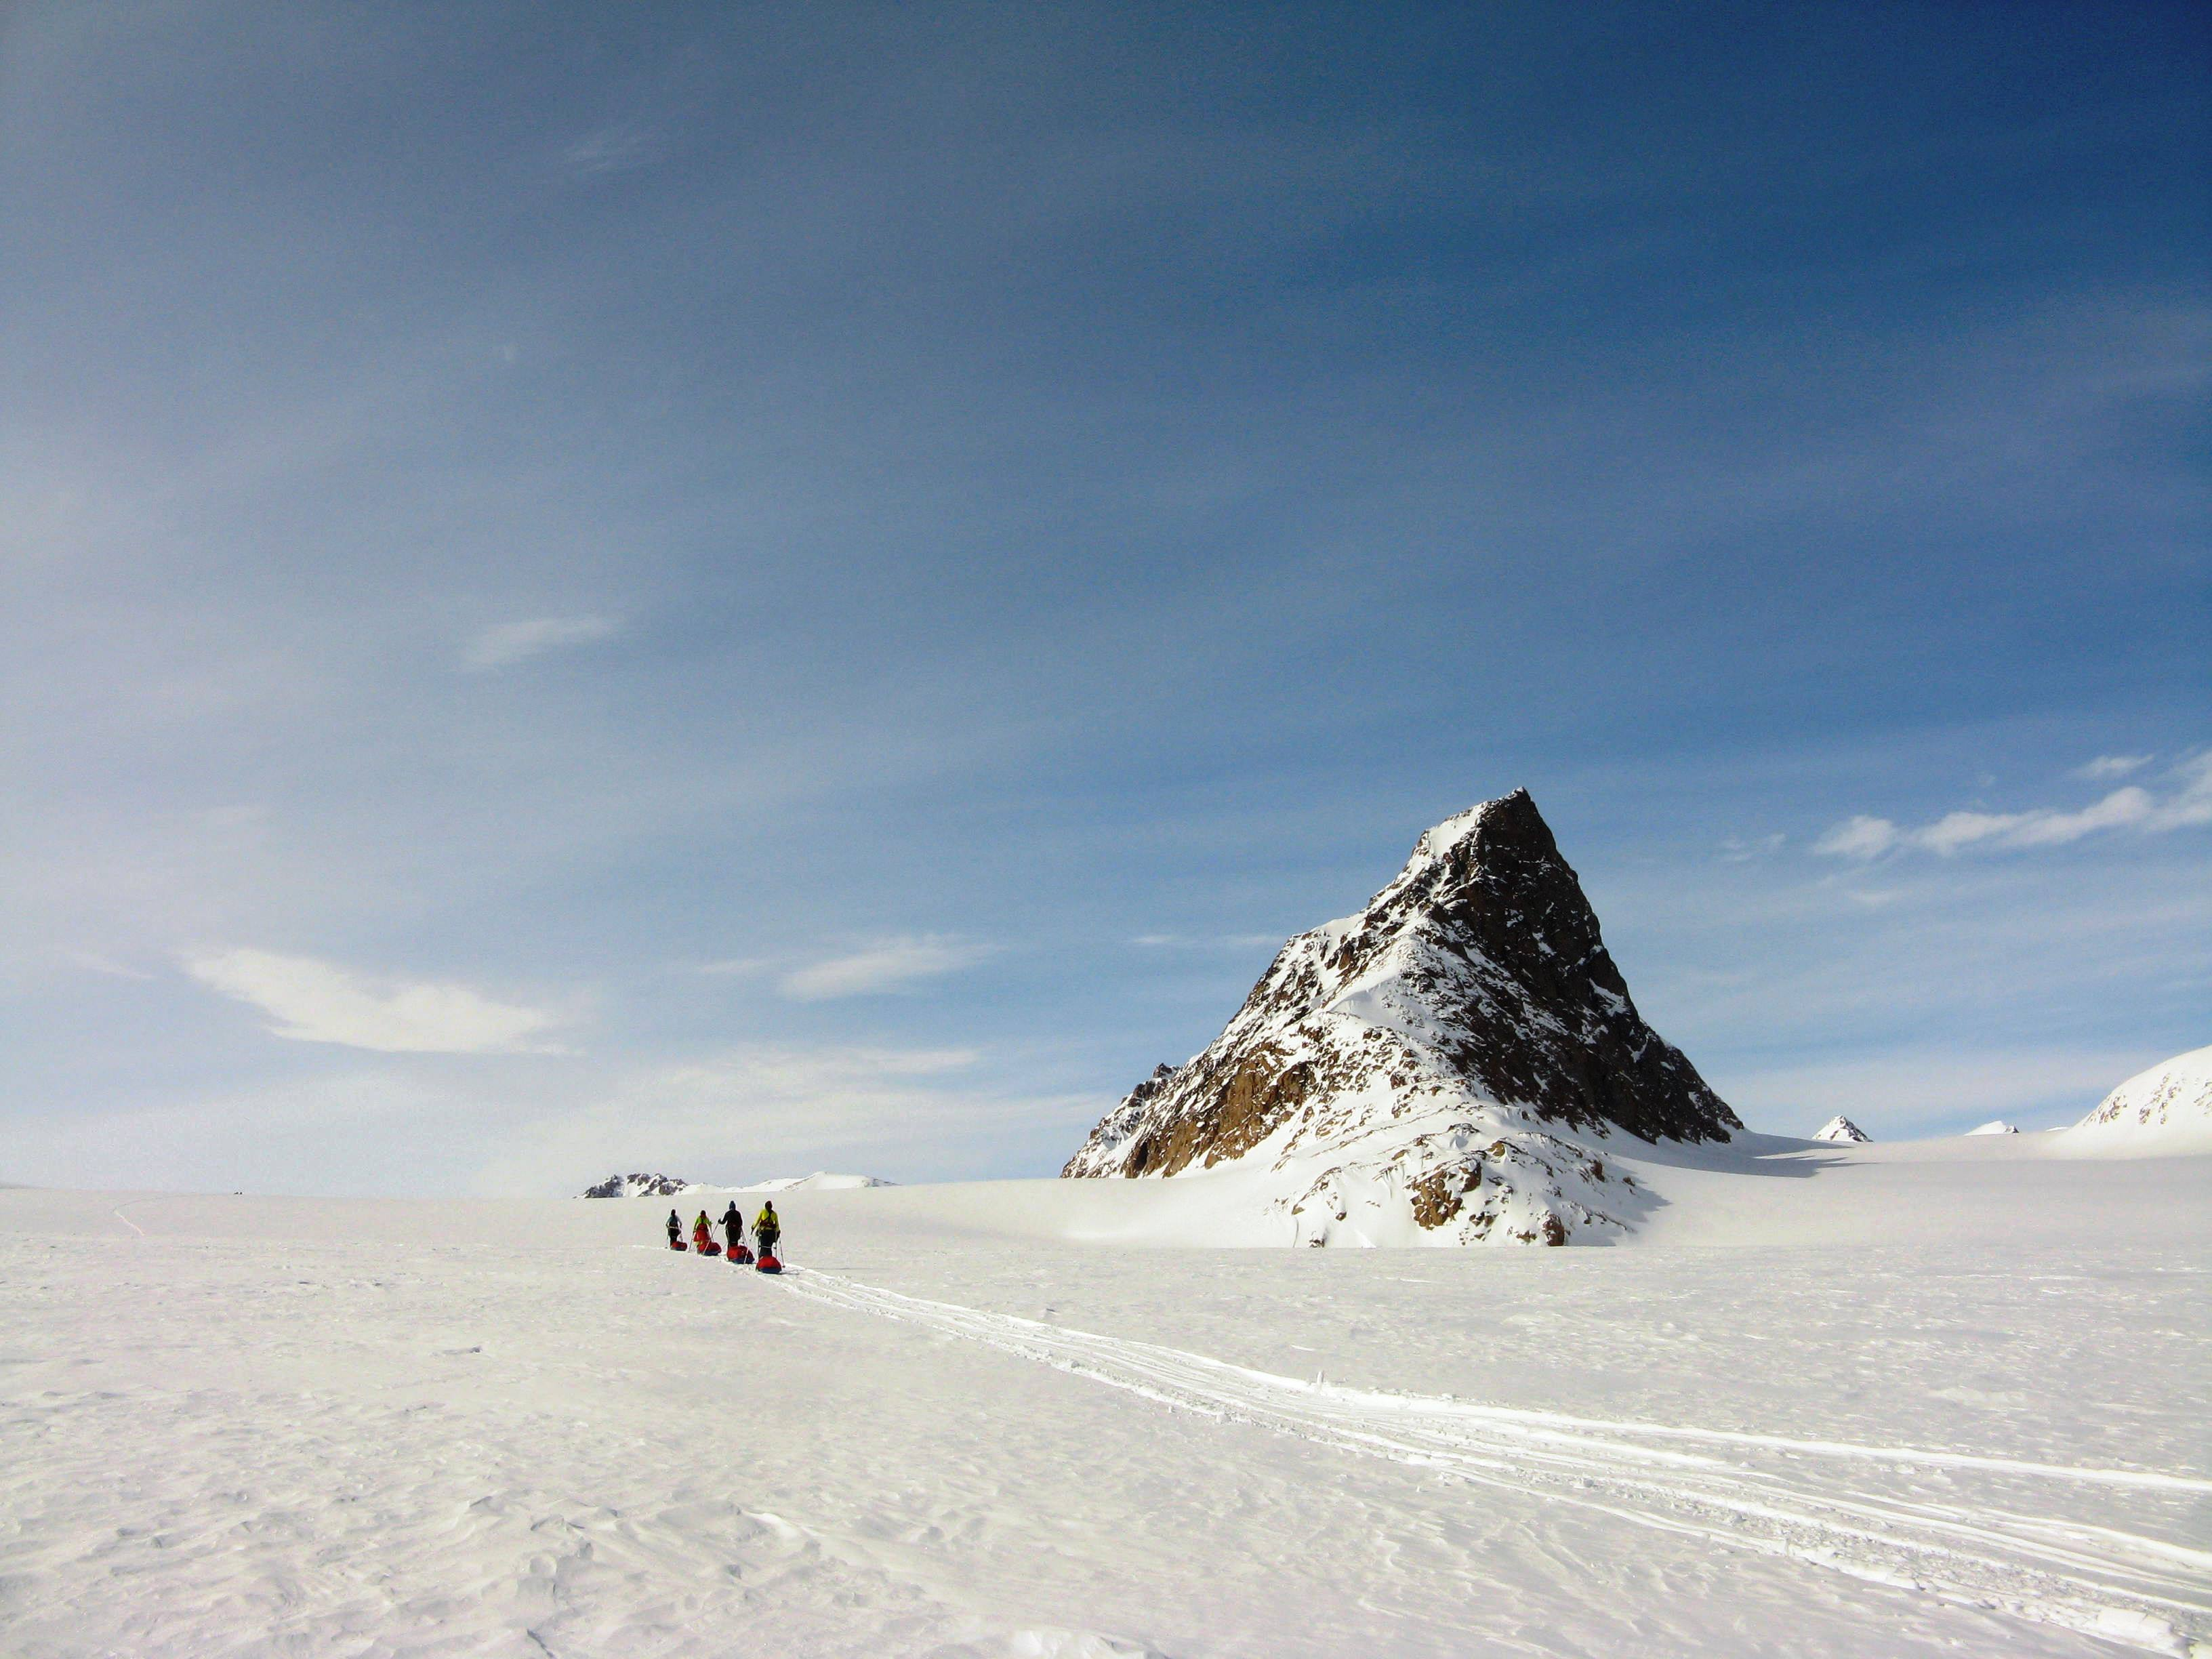 Skiing on the Bjerring Pederson Glacier Greenland